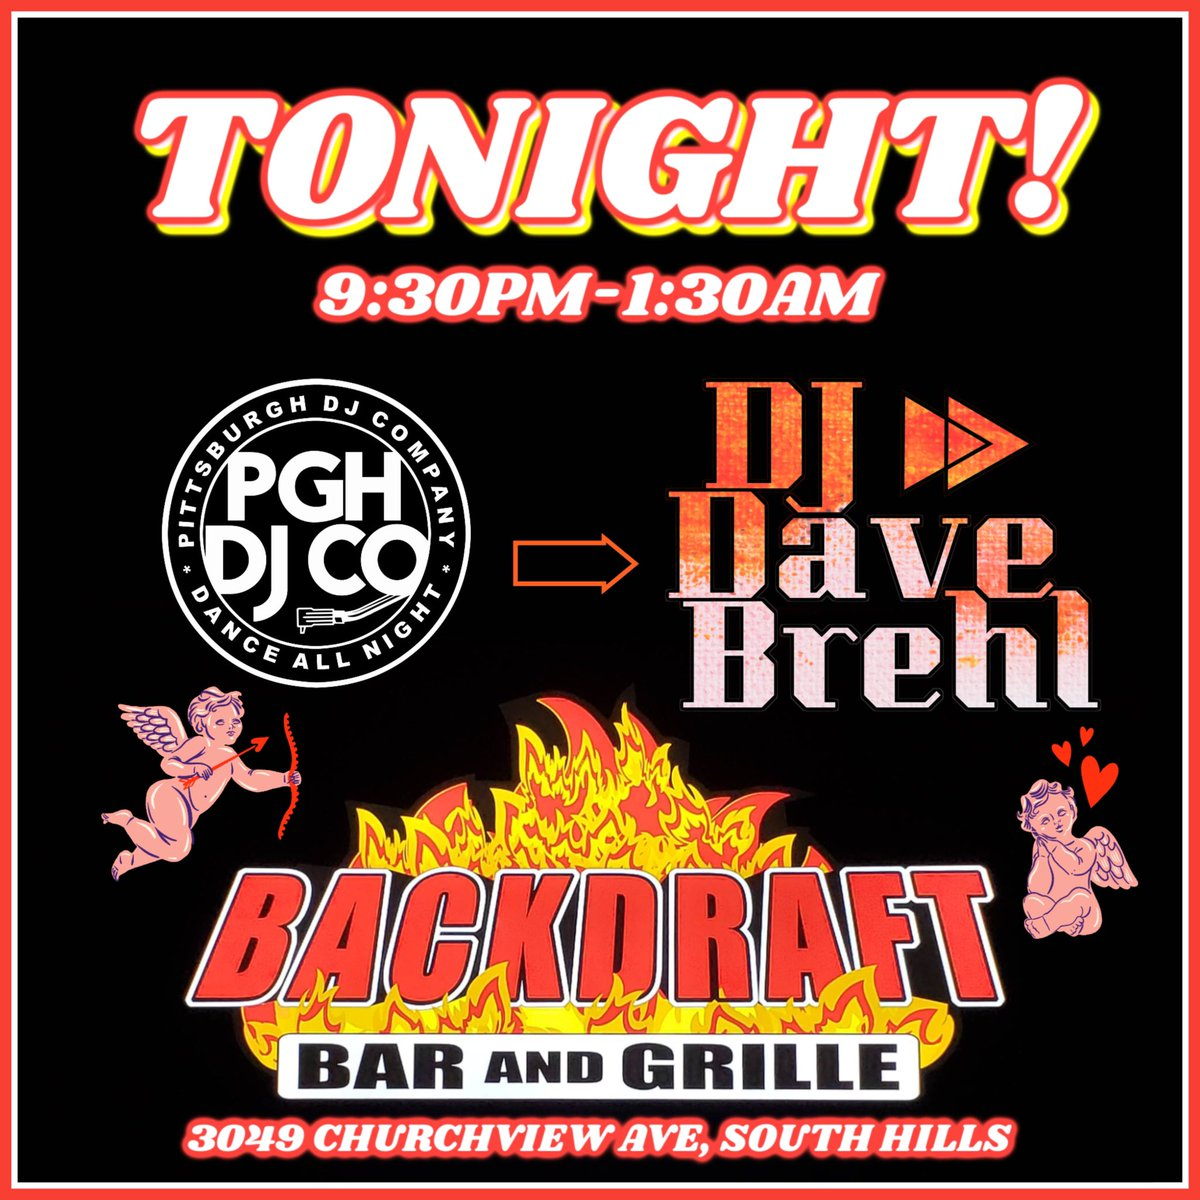 #tonight ! Look out, it's the return of #DJ Dave at #Backdraft ! He'll be spinning the tunes for you this #ValentinesDay ! #PittsburghDJ #PittsburghNightLife #ThingsToDoInPittsburgh #ValentinesDayPittsburghpic.twitter.com/sAfElEZVWY